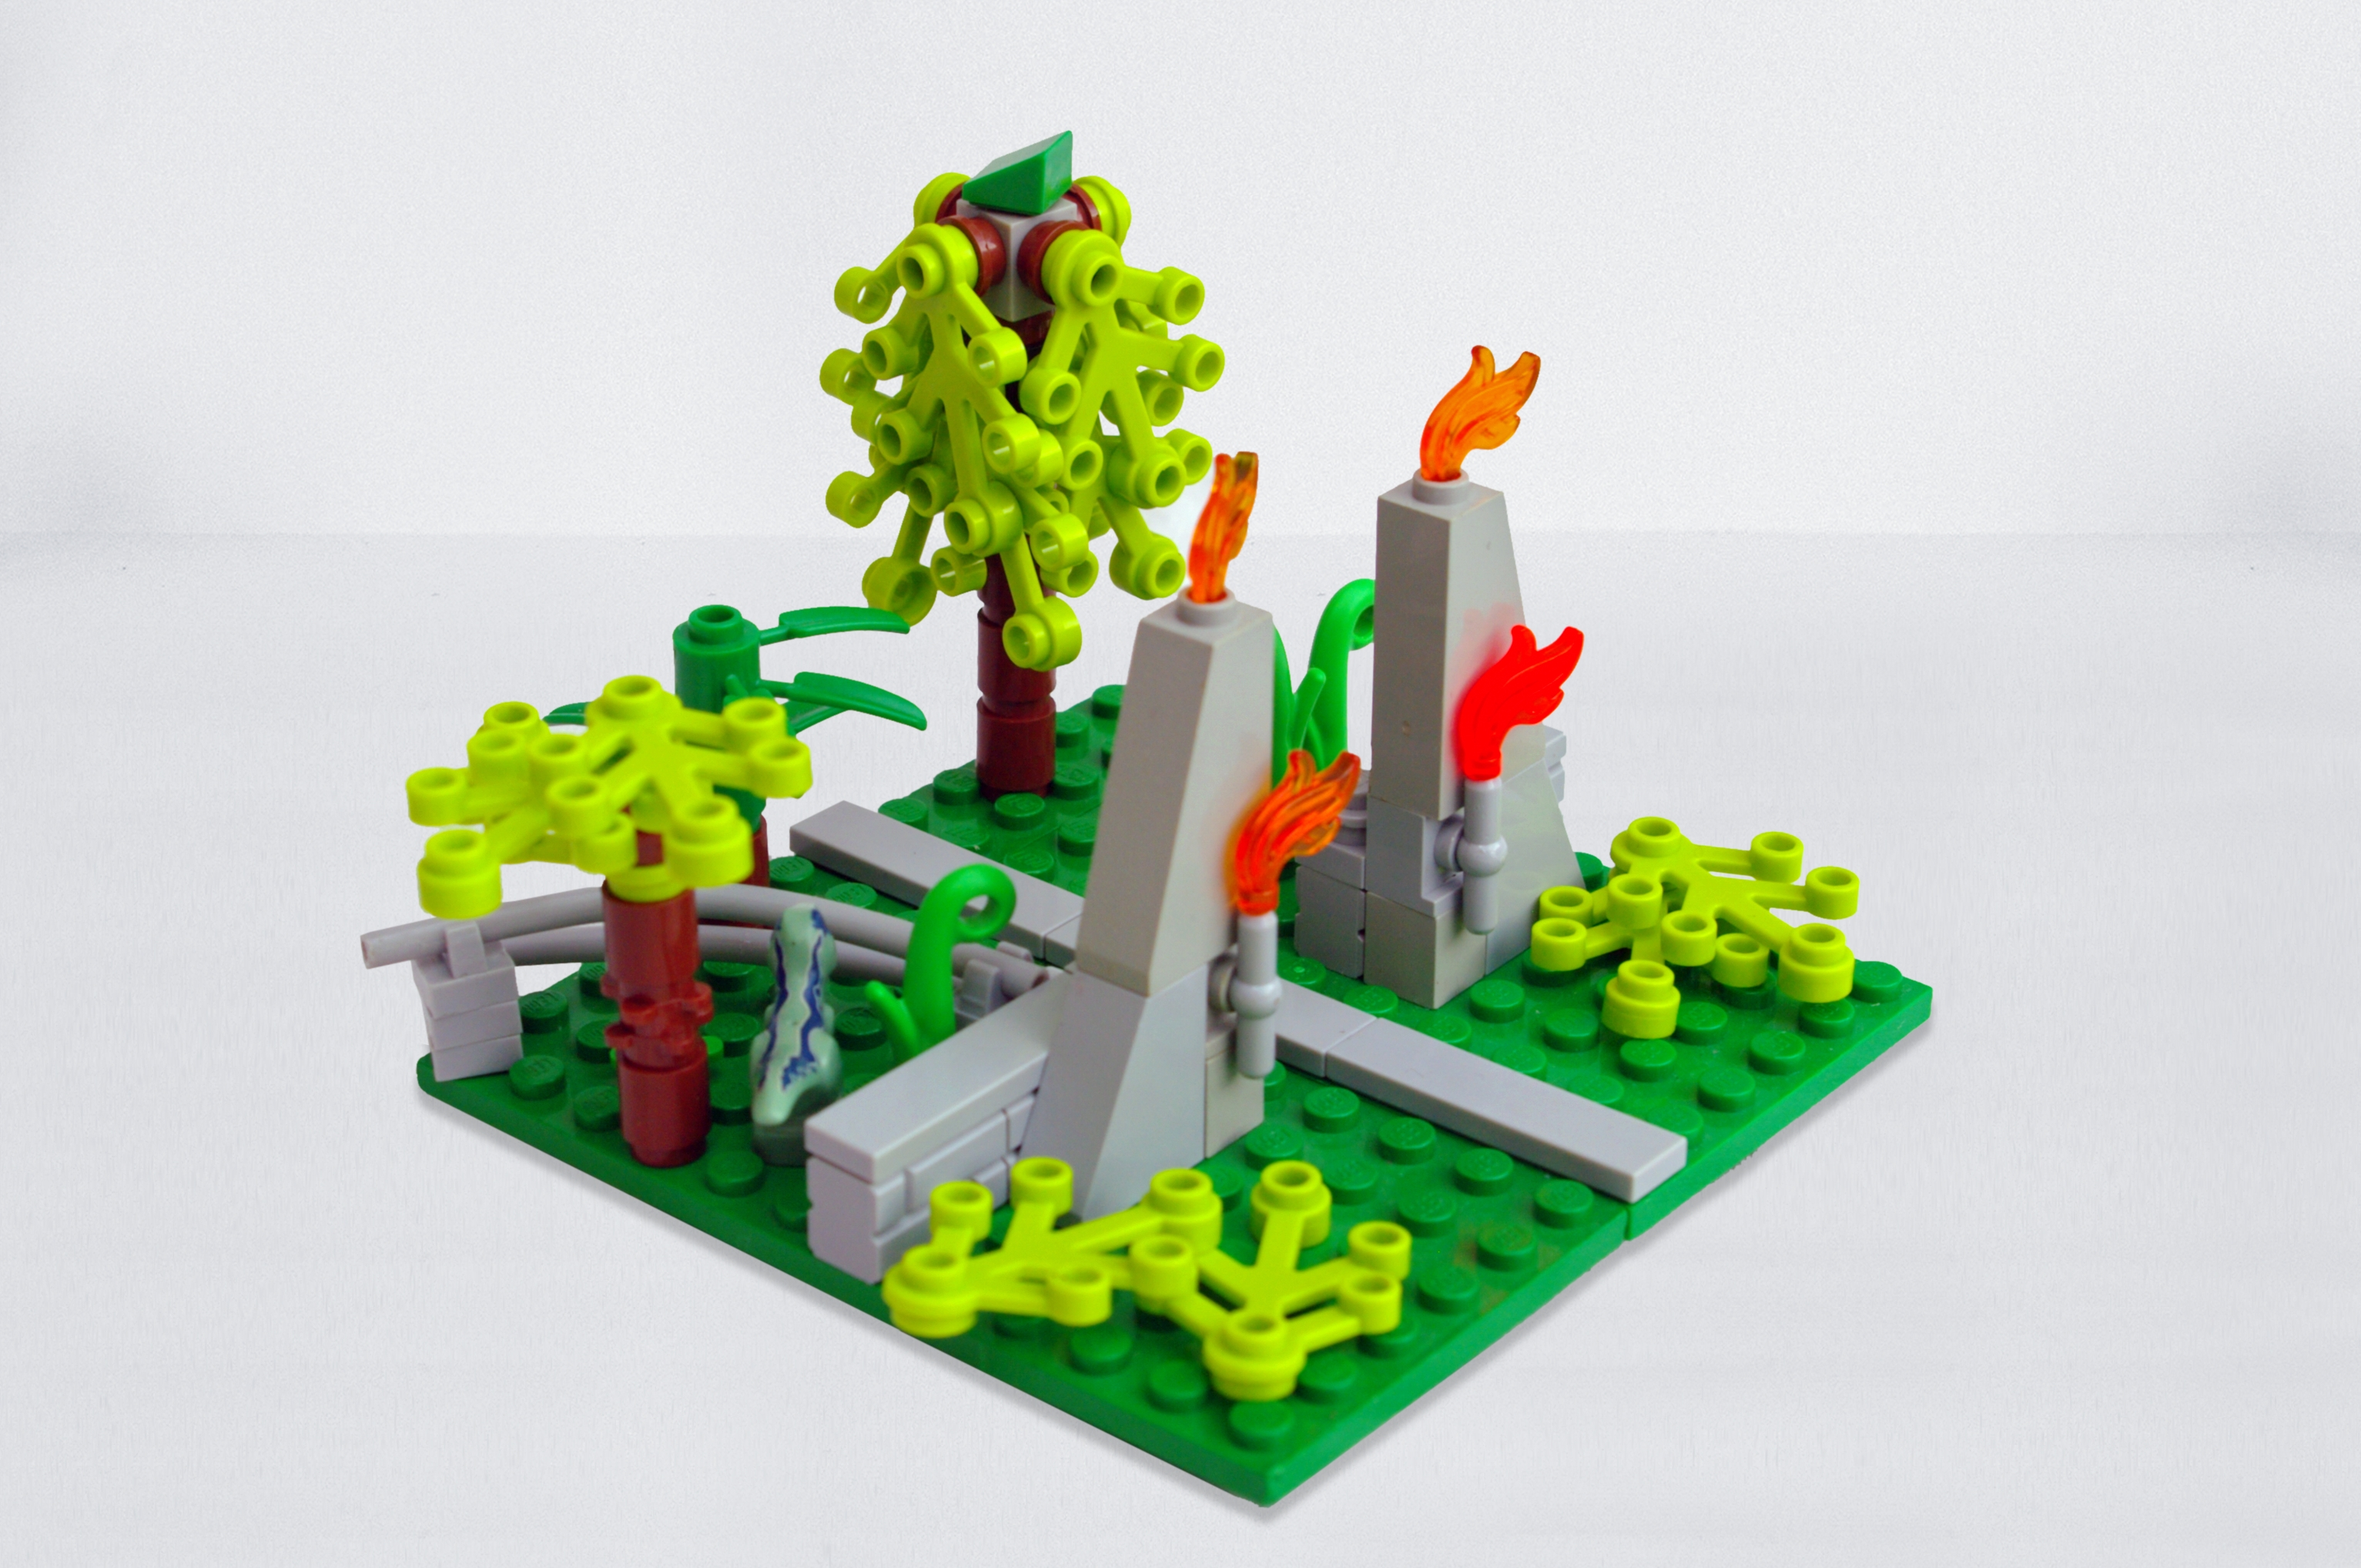 Concurs Microscale Movie Scenes – Creatia 2: Welcome to Jurassic Park!